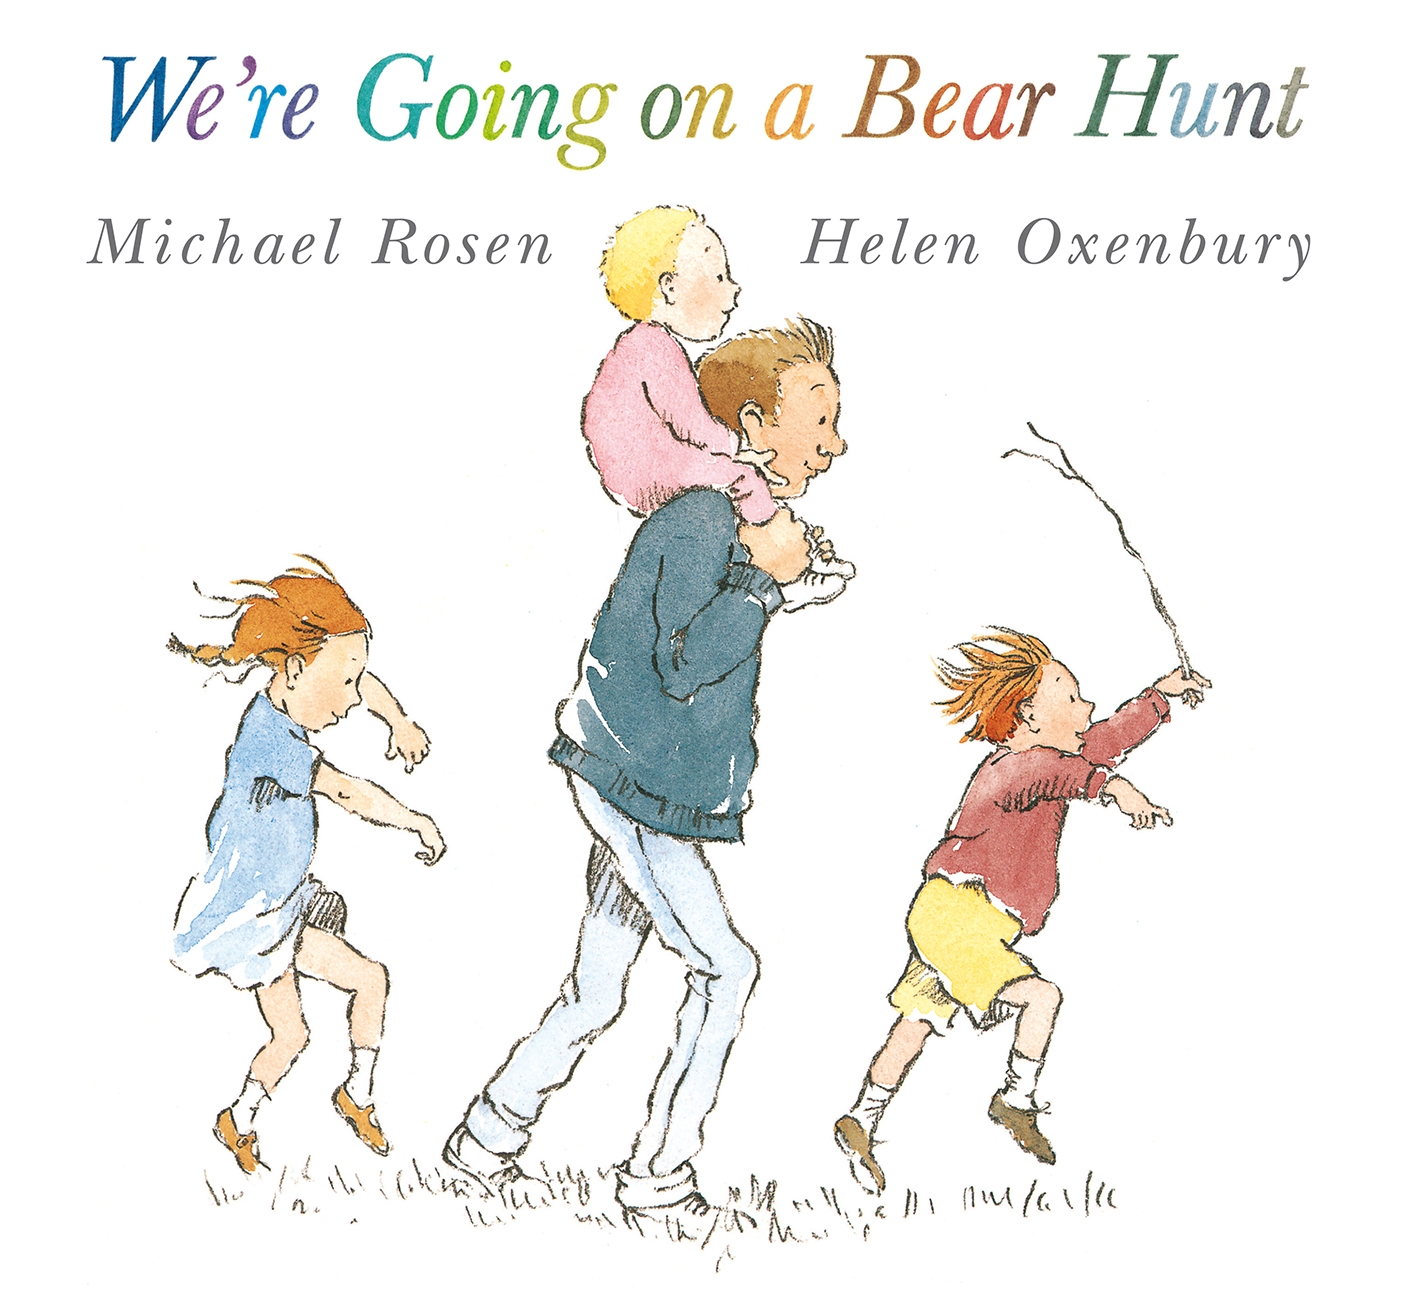 http://1.bp.blogspot.com/-ae0_CqcKnCI/UVTG6vKRQnI/AAAAAAAAC5w/vZRjDD8GPyk/s1600/Were-all-going-on-a-bear-hunt.jpg